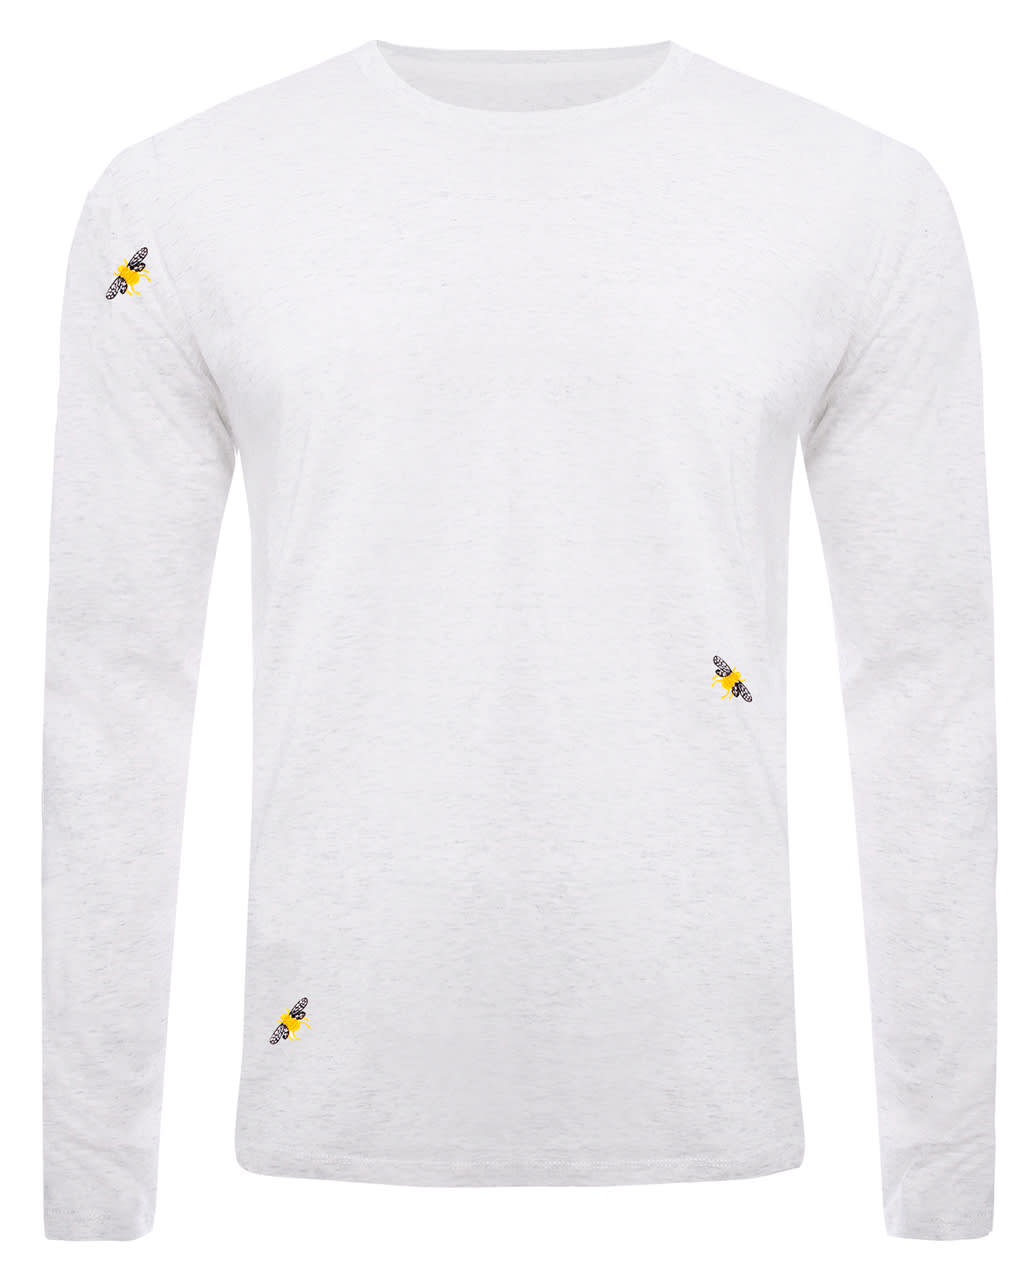 Bee Embroidered Long Sleeved Top Heather Grey